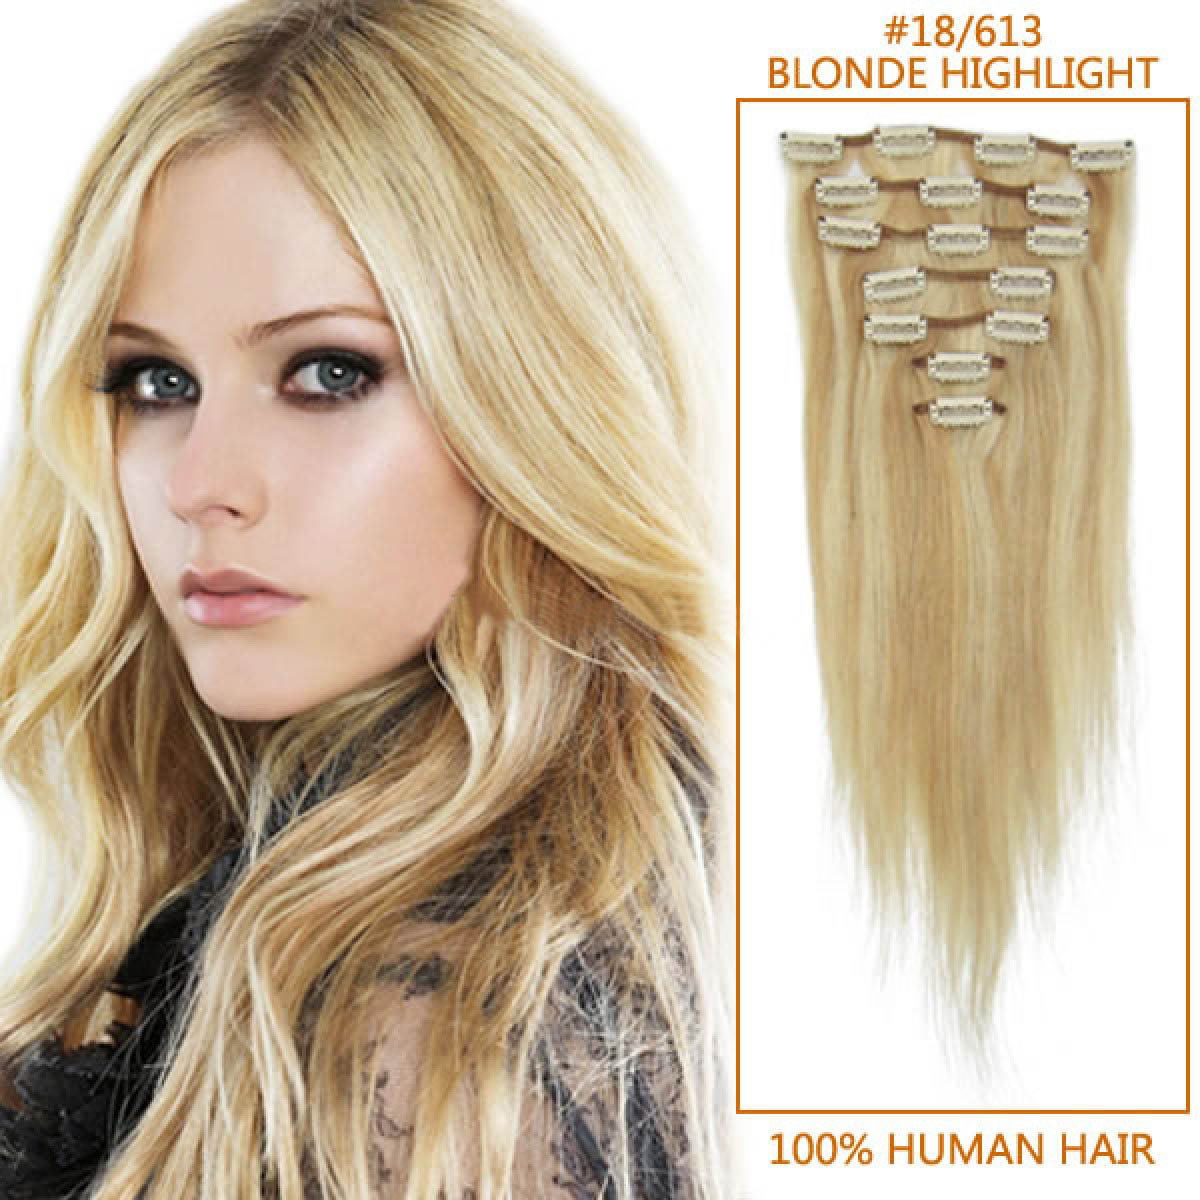 26 Inch #18/613 Blonde Highlight Clip In Remy Human Hair